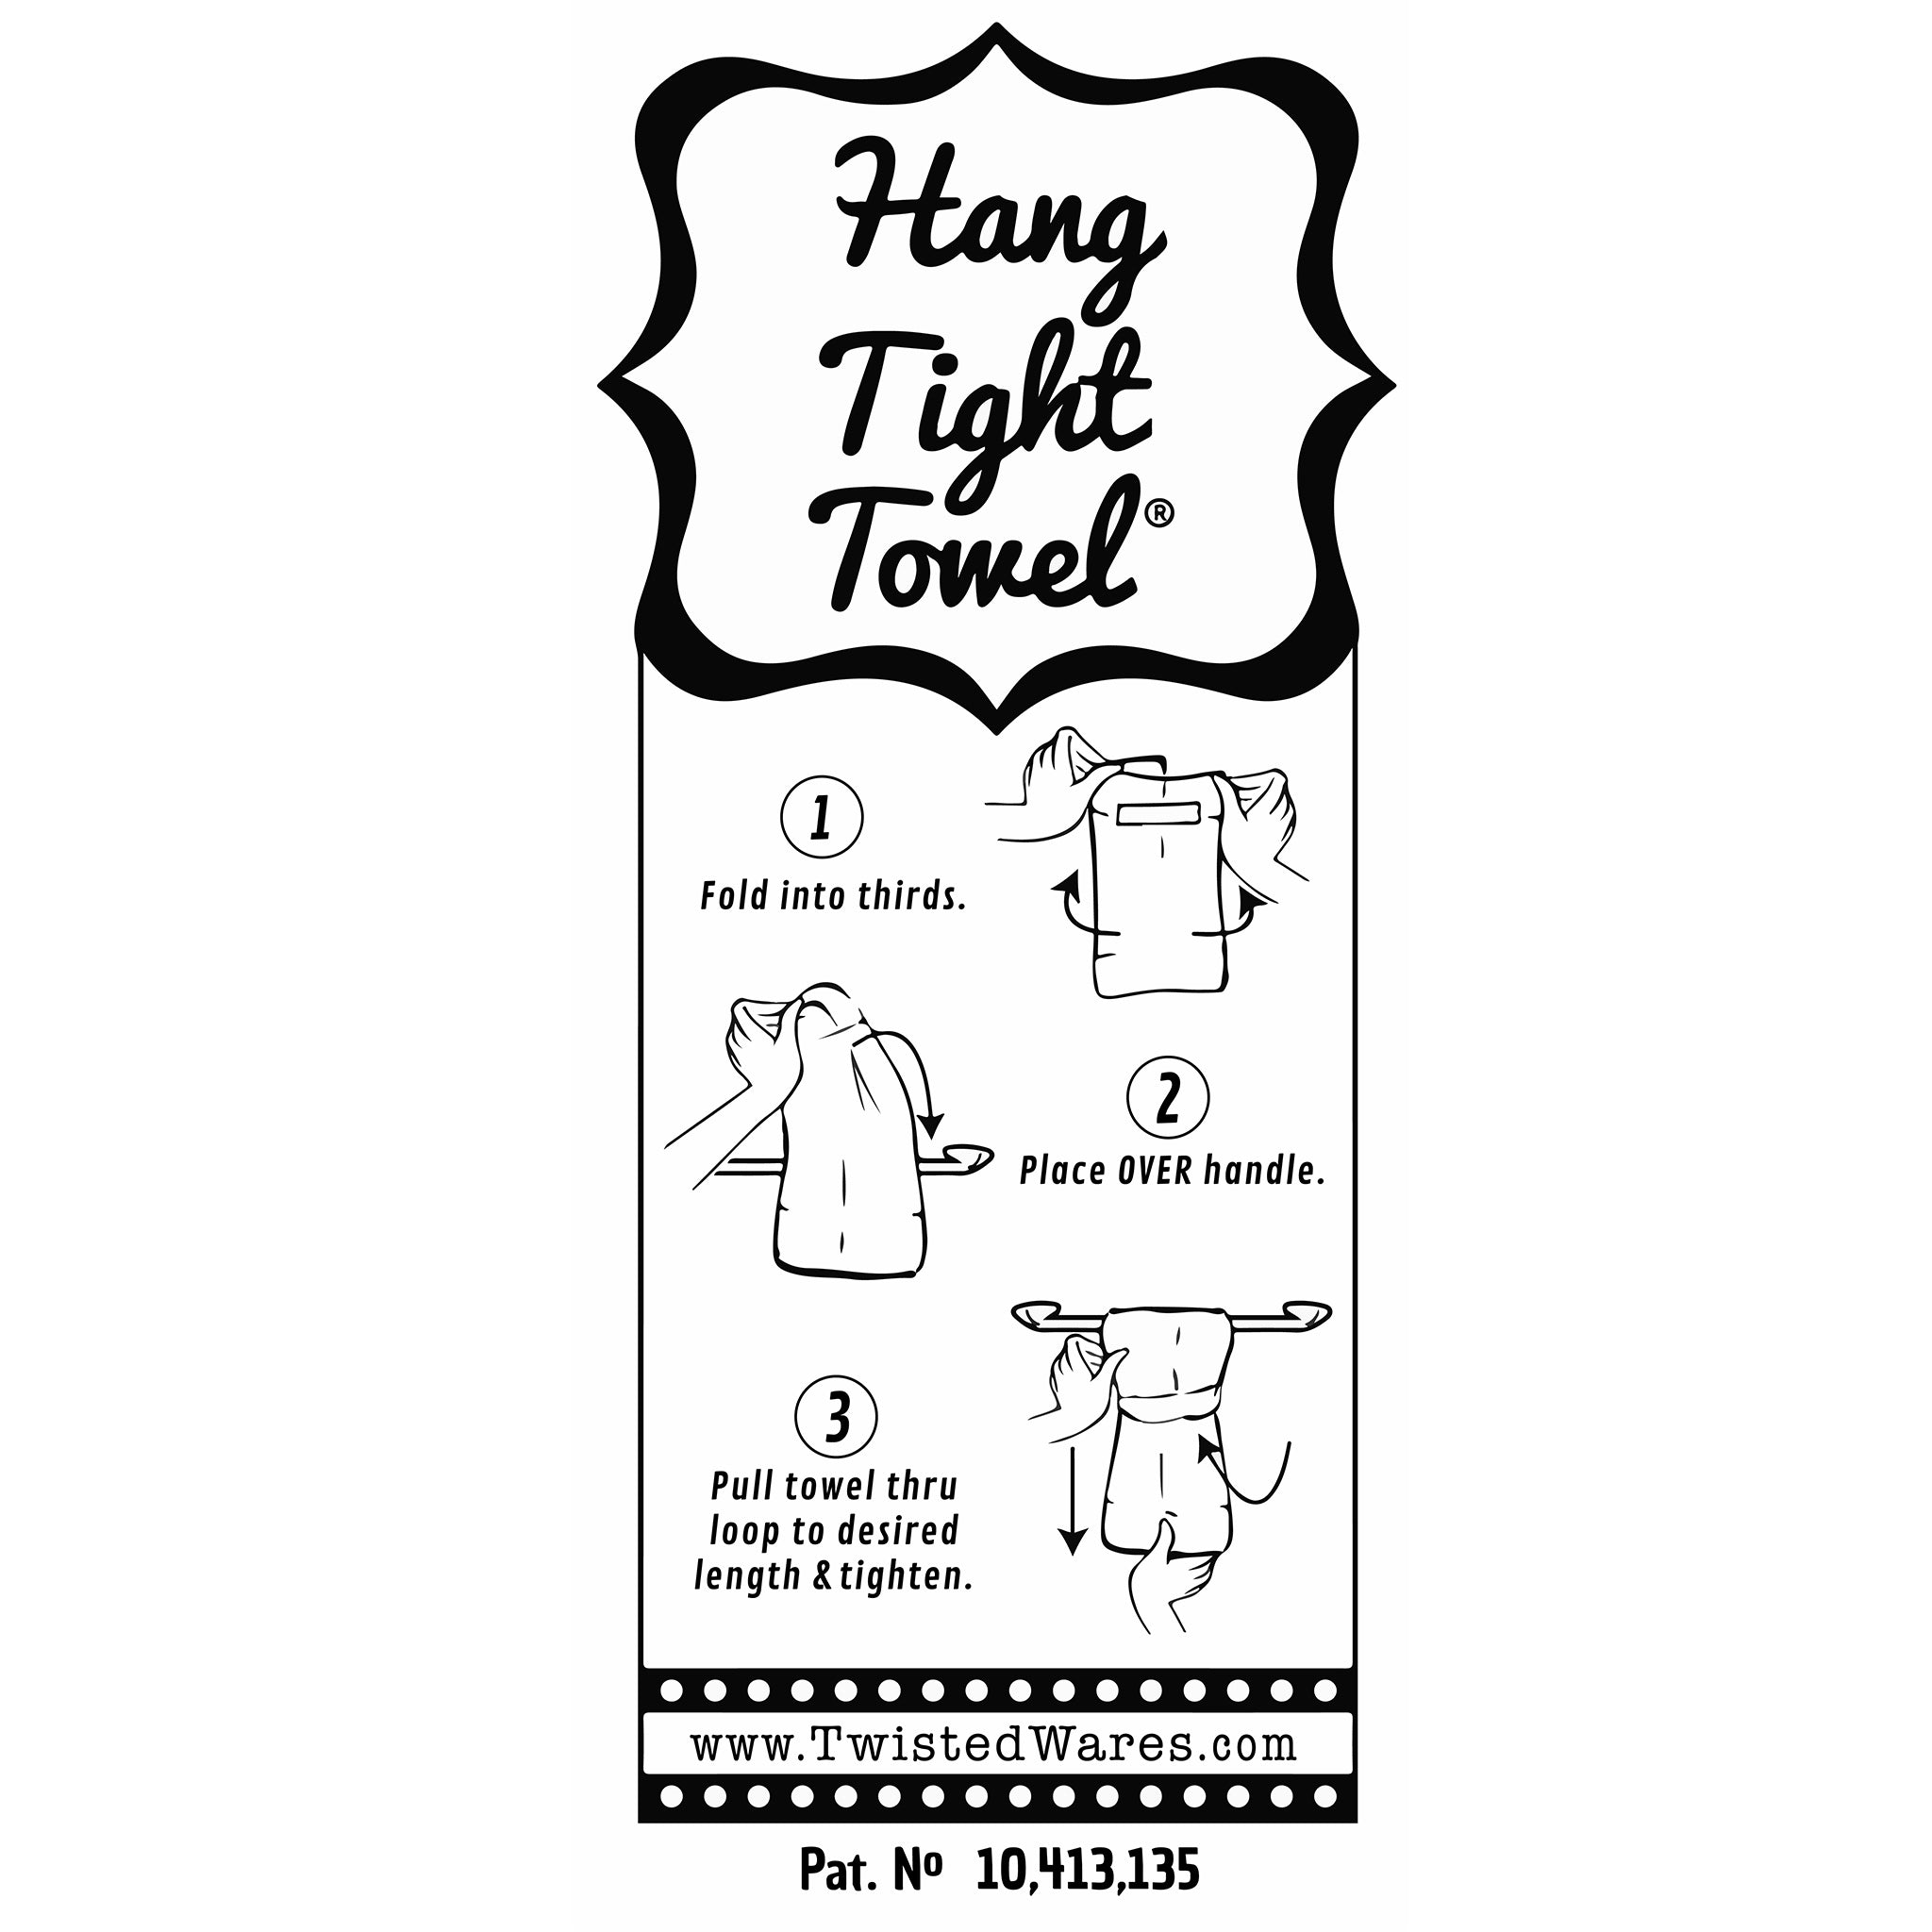 Spooning Leads To Forking Flour Sack Hang Tight Towel®